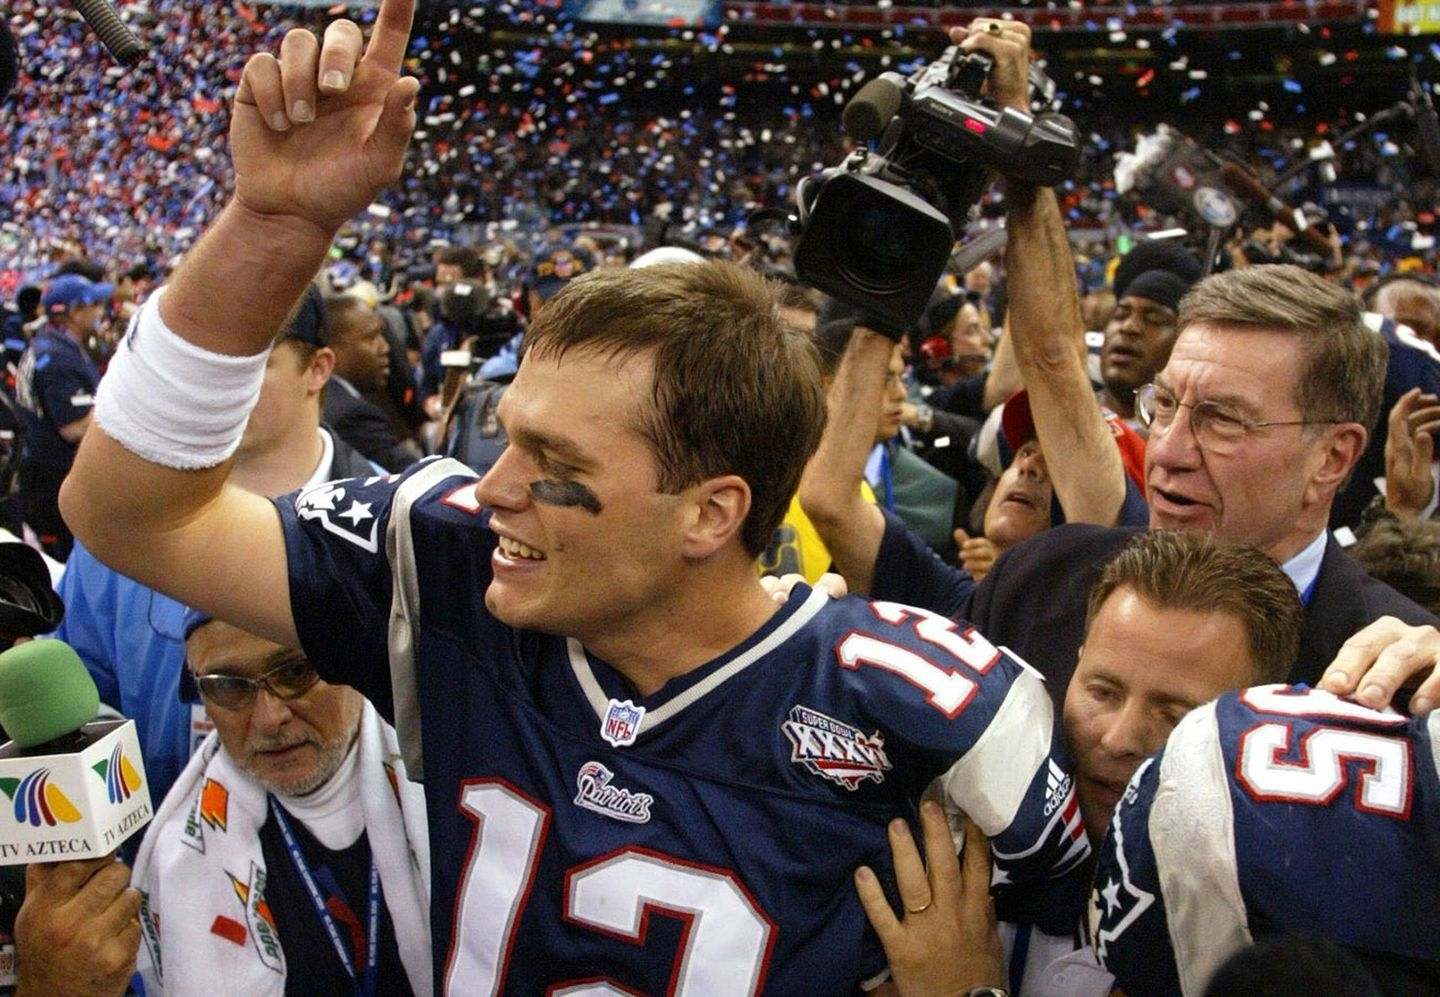 The First Patriots-Rams Super Bowl Was The One That Started with regard to Patriots First Super Bowl